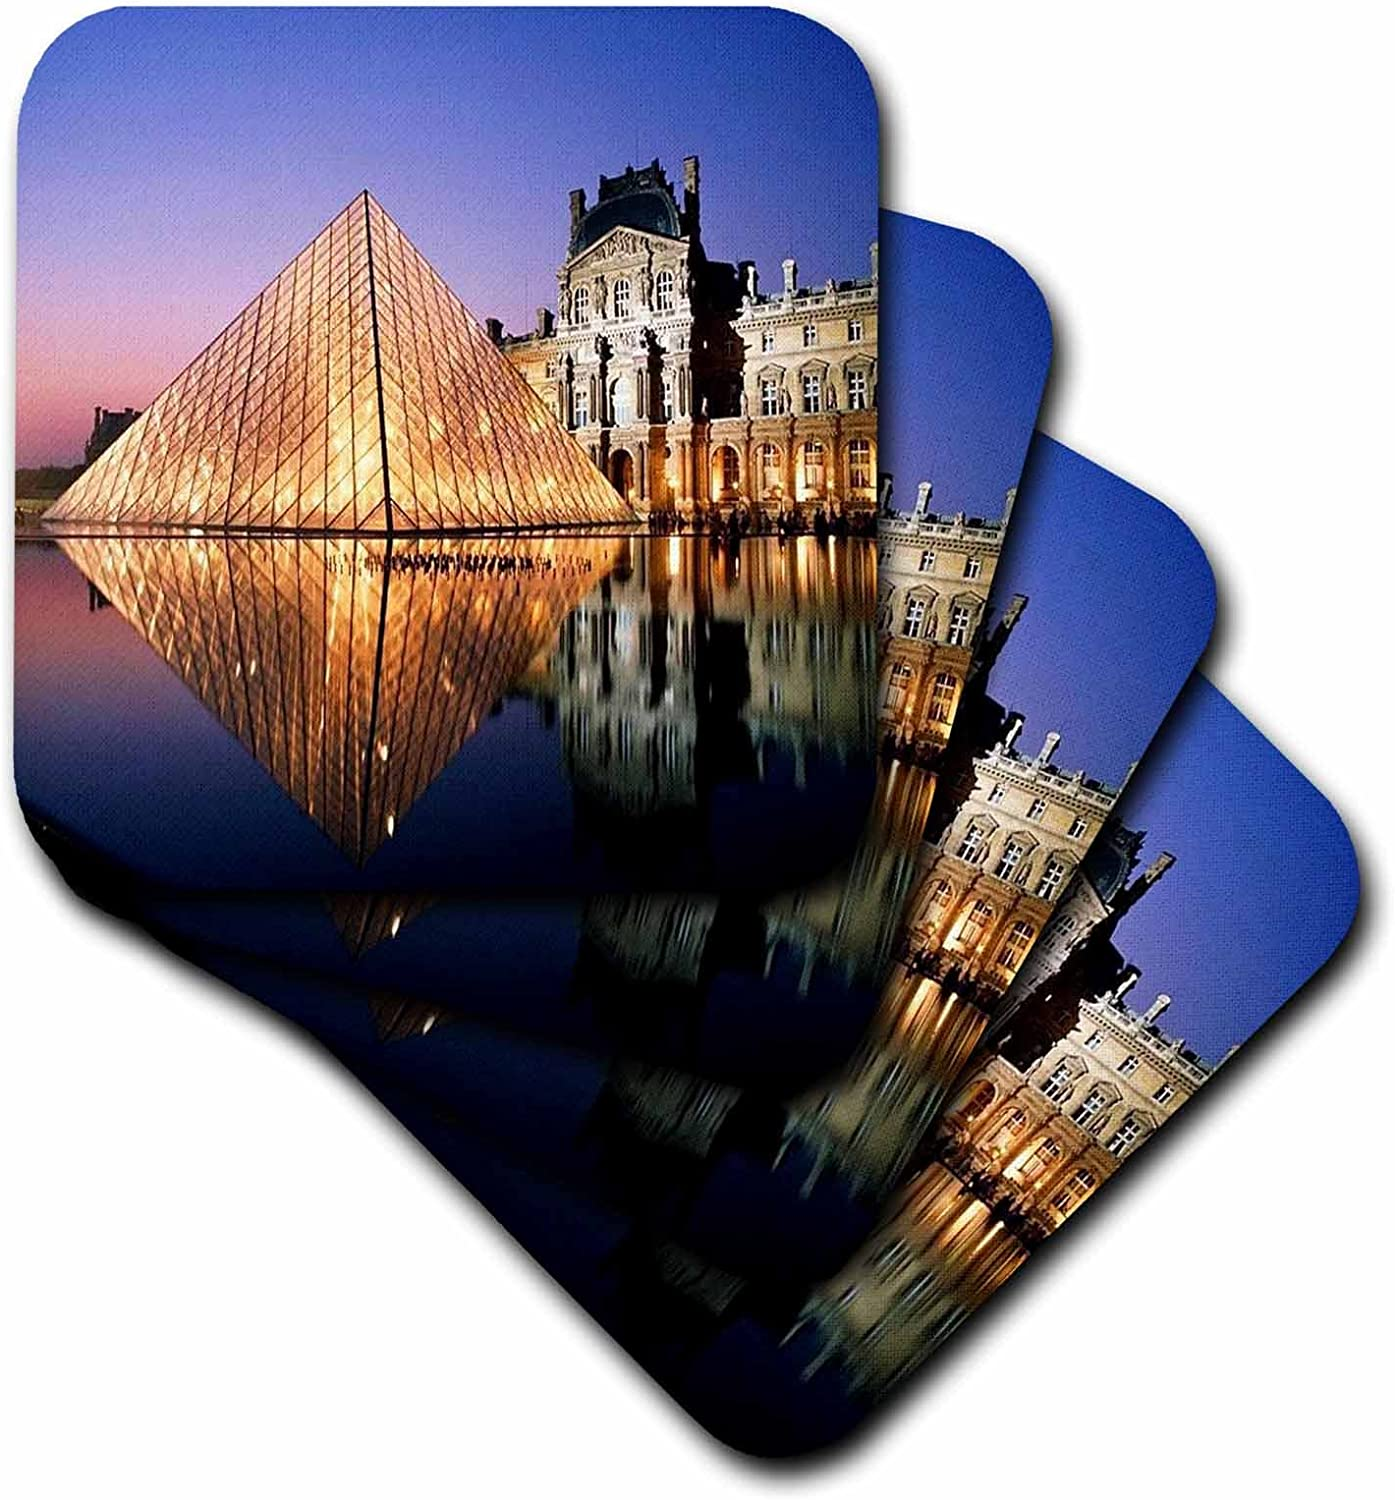 3dRose CST/_54198/_1 The Louvre at Night Soft Coasters Set of 4